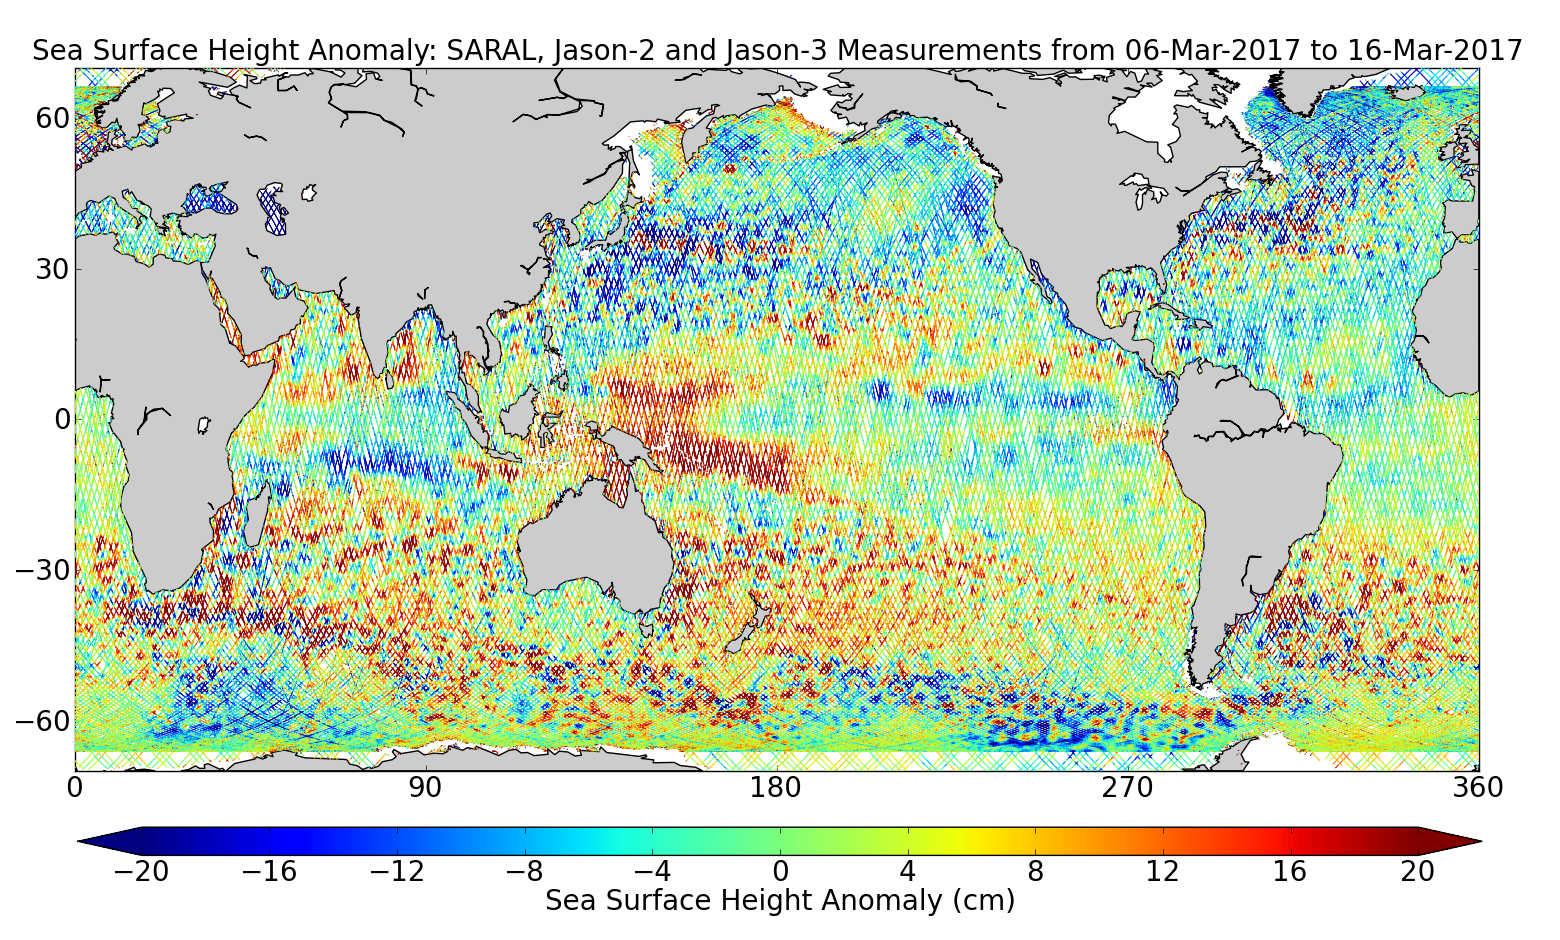 Sea Surface Height Anomaly: SARAL, Jason-2 and Jason-3 Measurements from 06-Mar-2017 to 16-Mar-2017